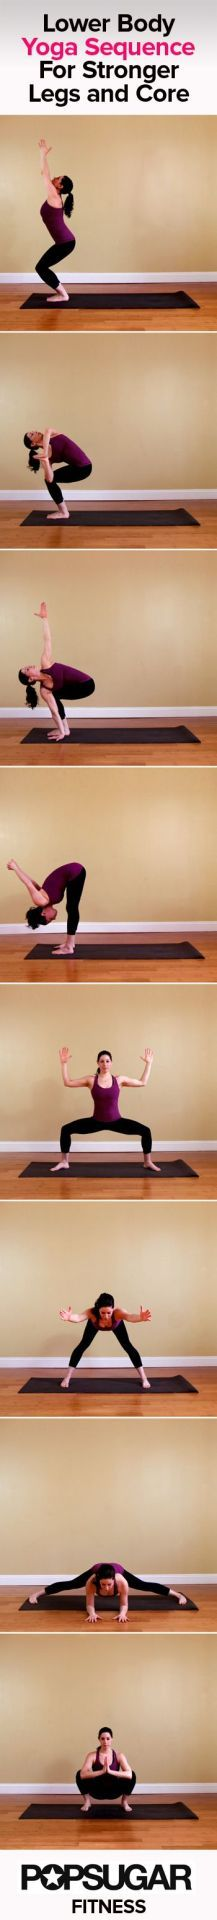 Yoga sessions reduce symptoms of chronic low back pain